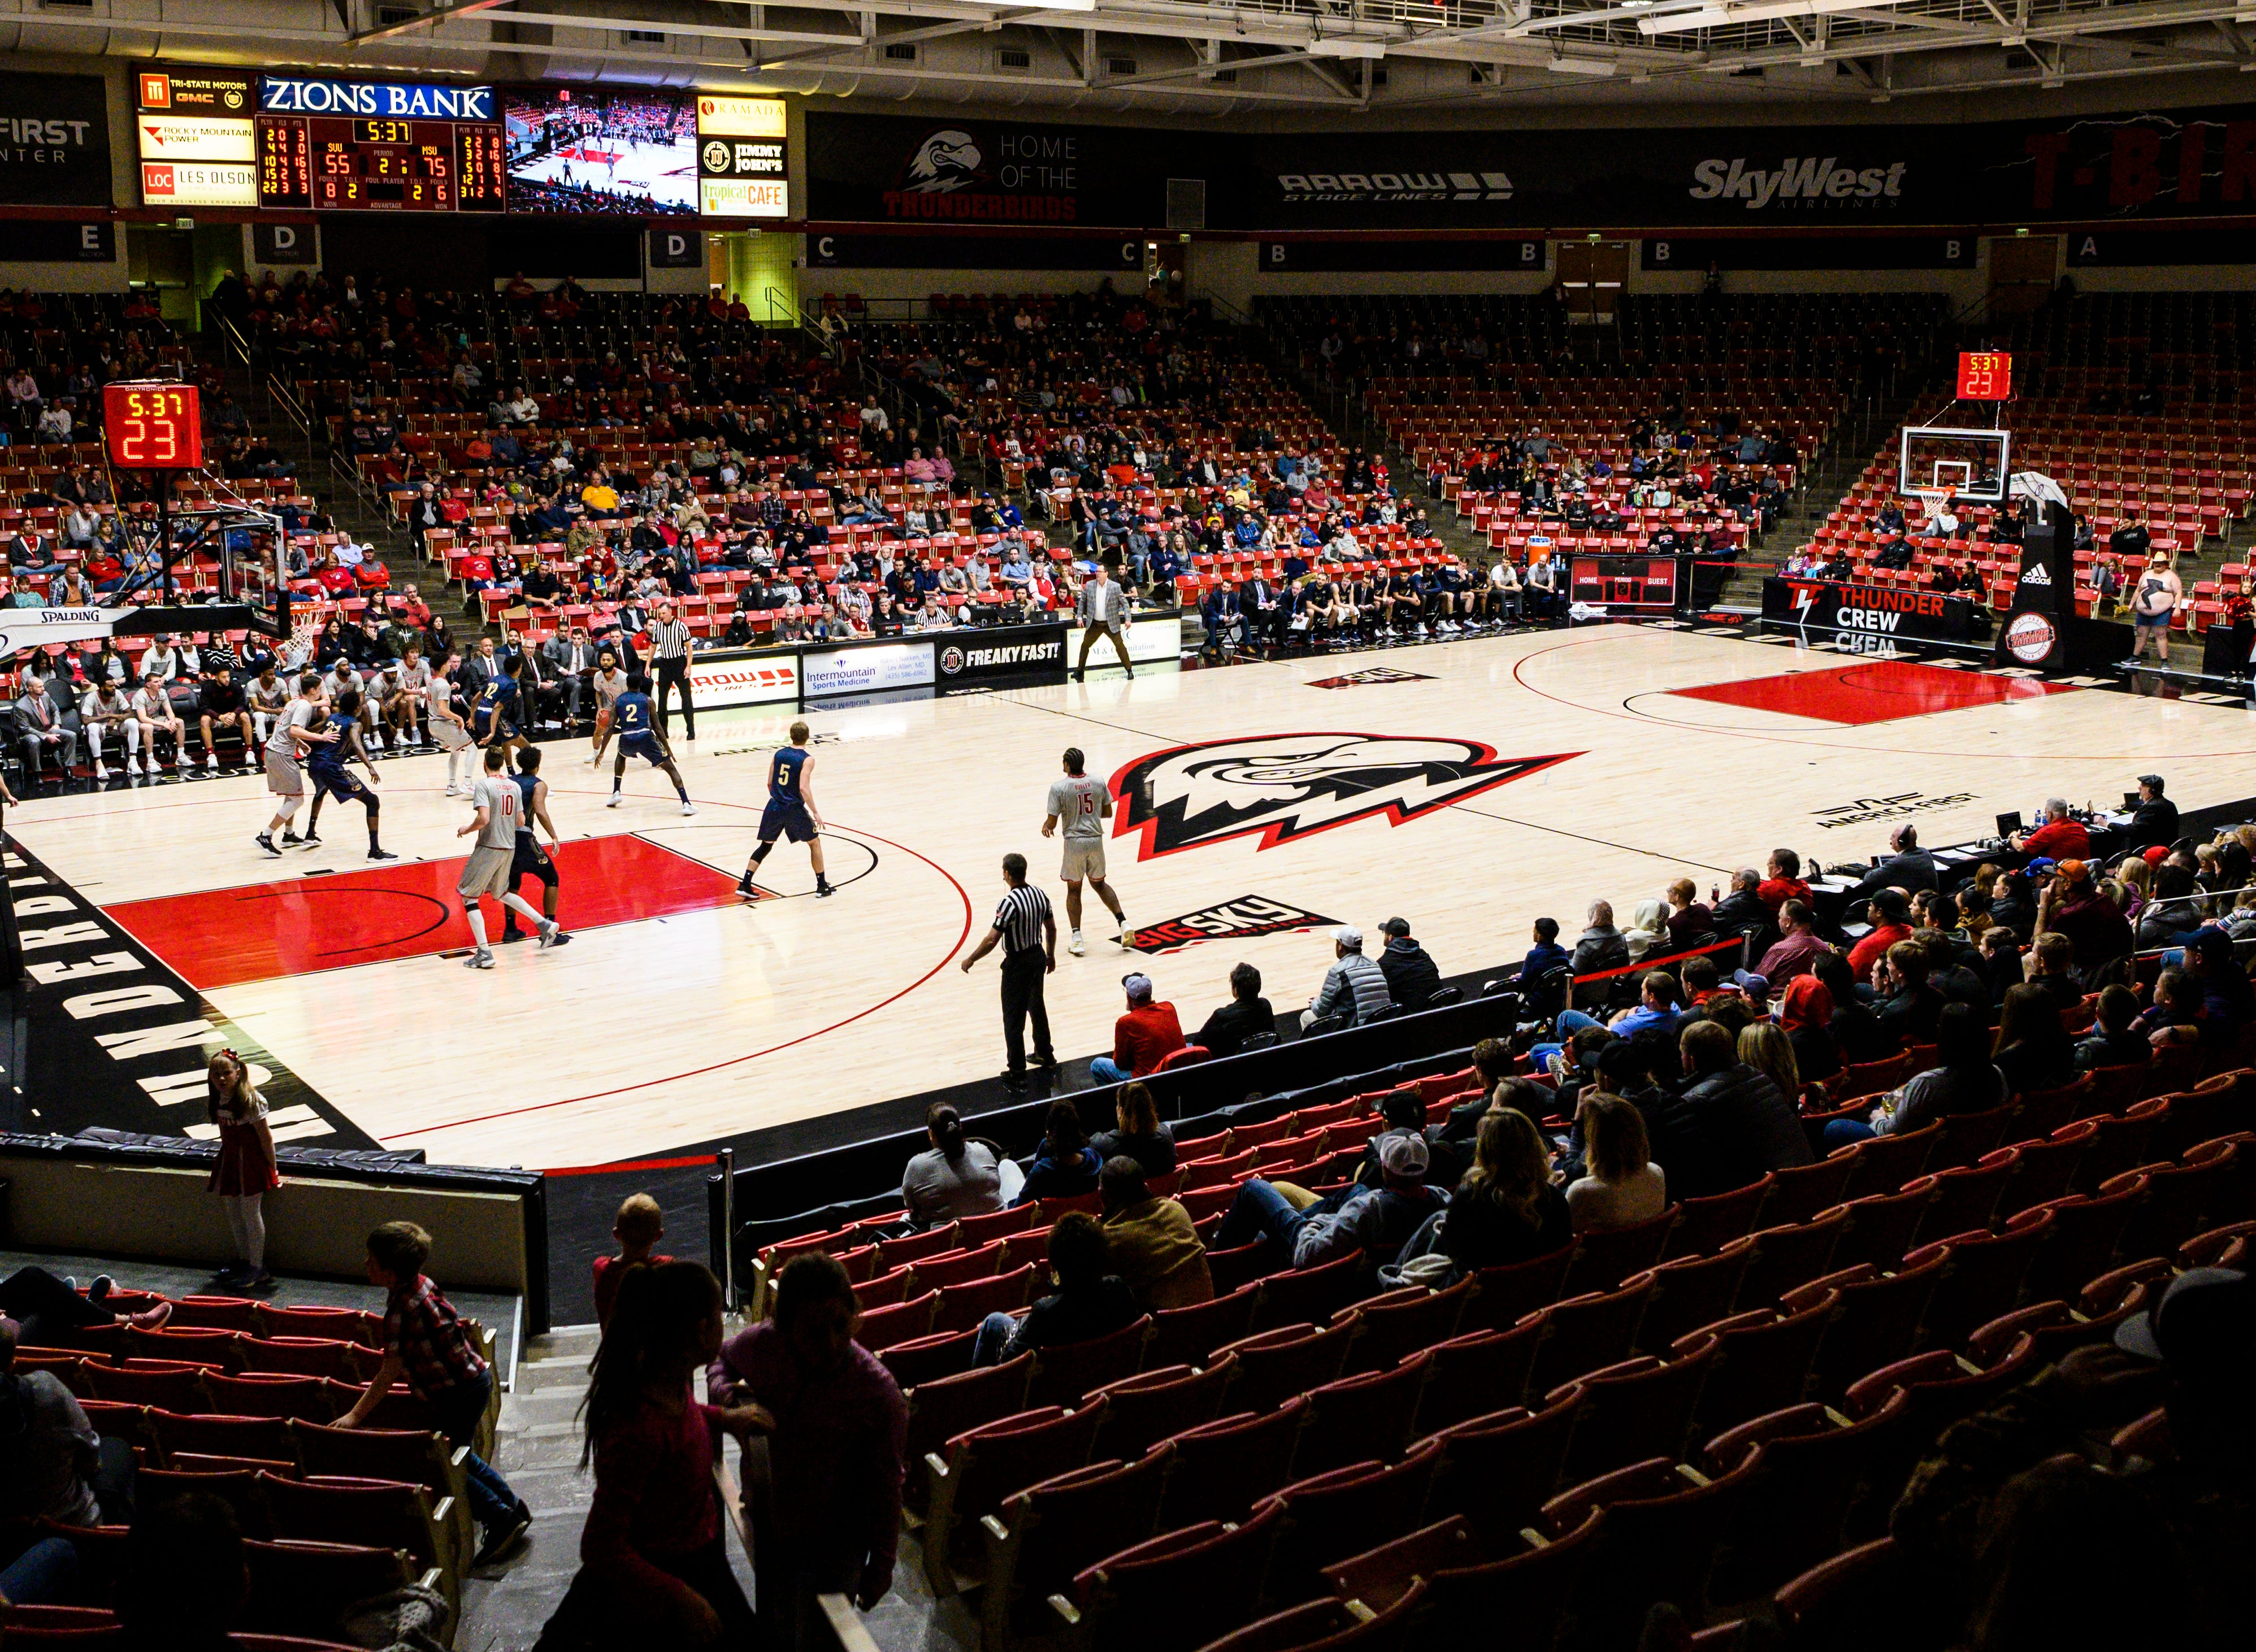 The Southern Utah University men's basketball team plays against Montana State in the America First Event Center Saturday, December 29, 2018.